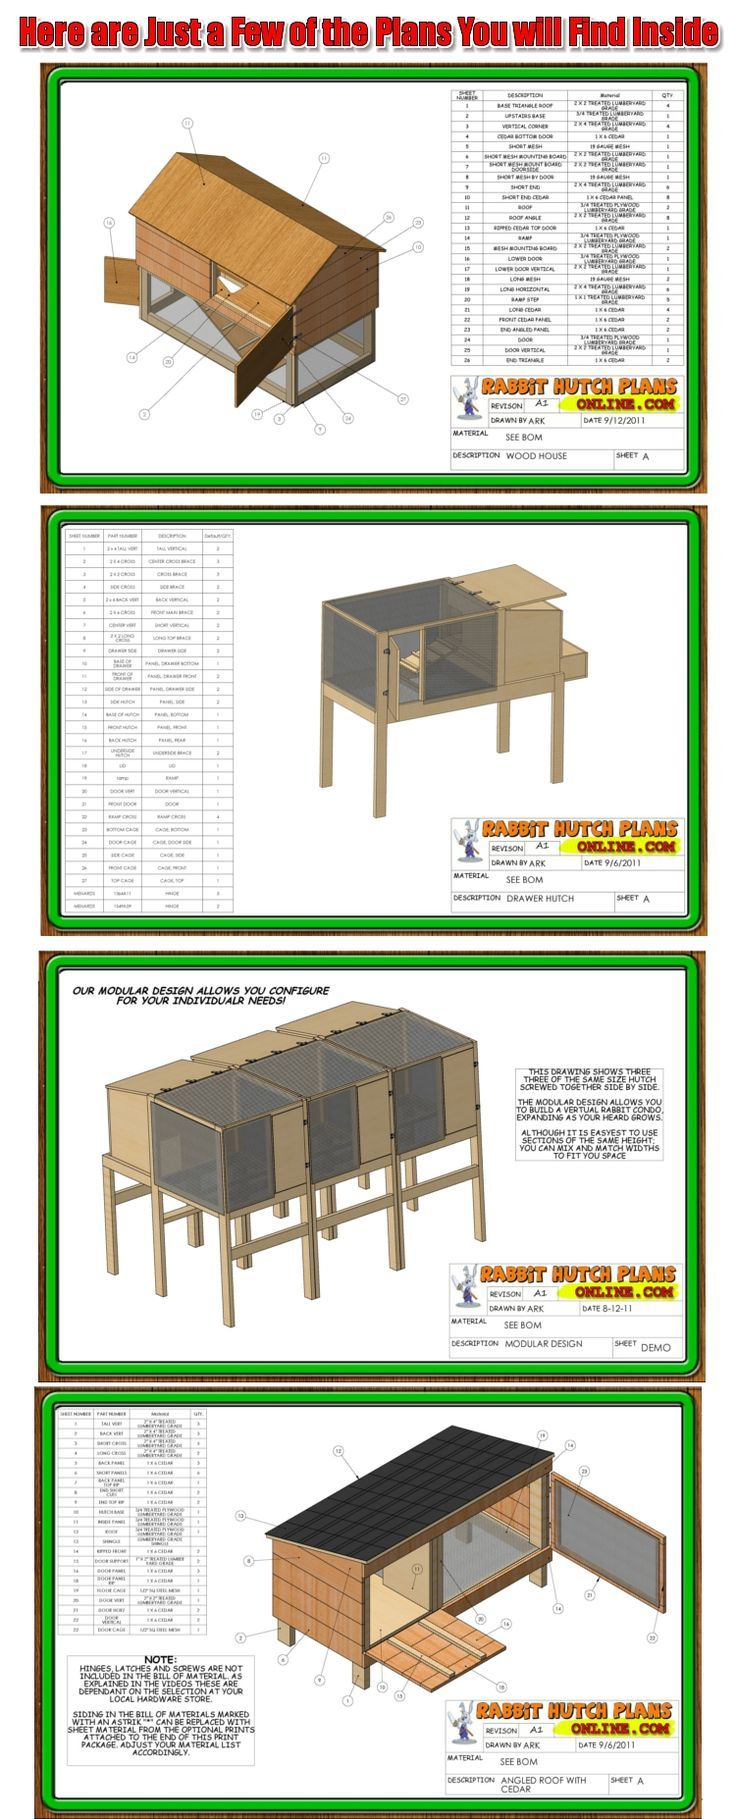 Rabbit Hutch Plan - WoodWorking Projects & Plans